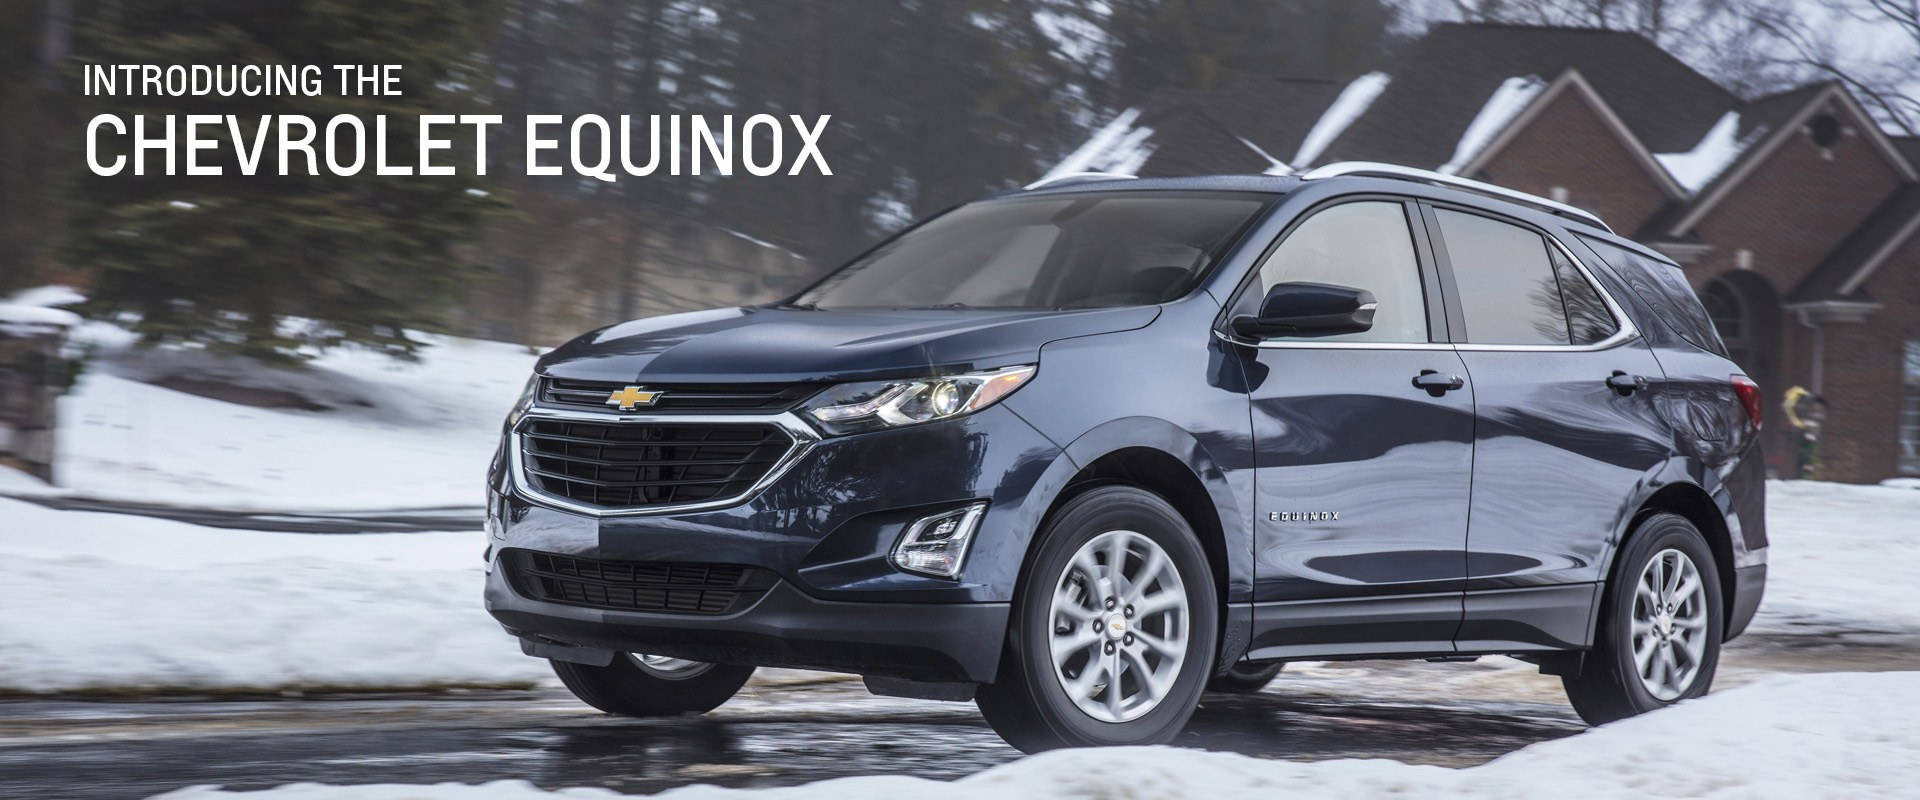 chevy equinox header